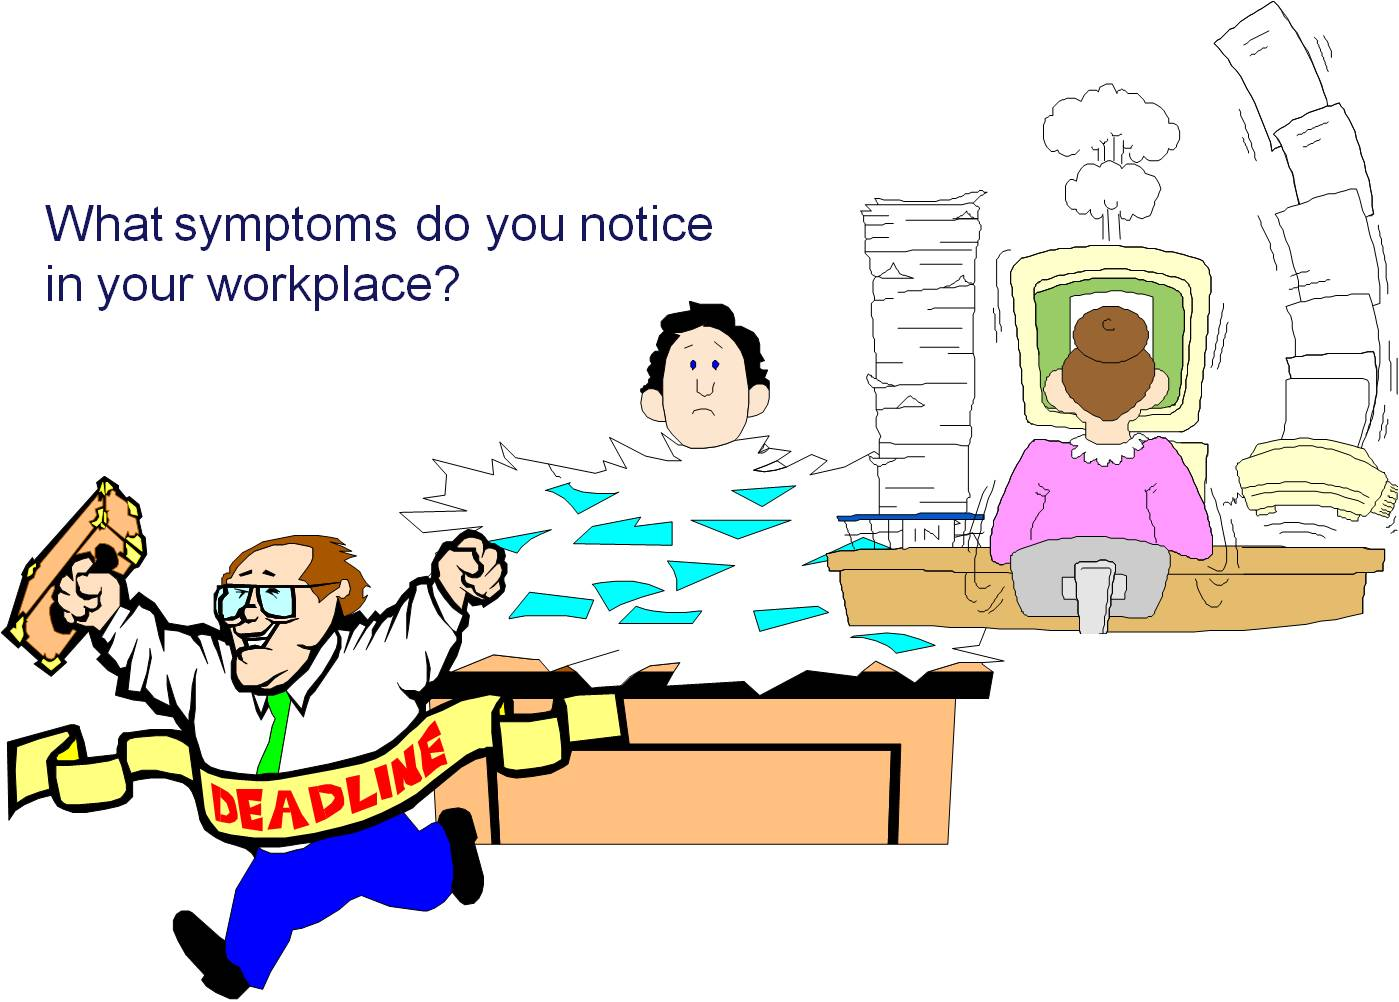 13-Must-Read-Tips-to-Help-Your-Employees-Manage-Stress-(Part-1)-2